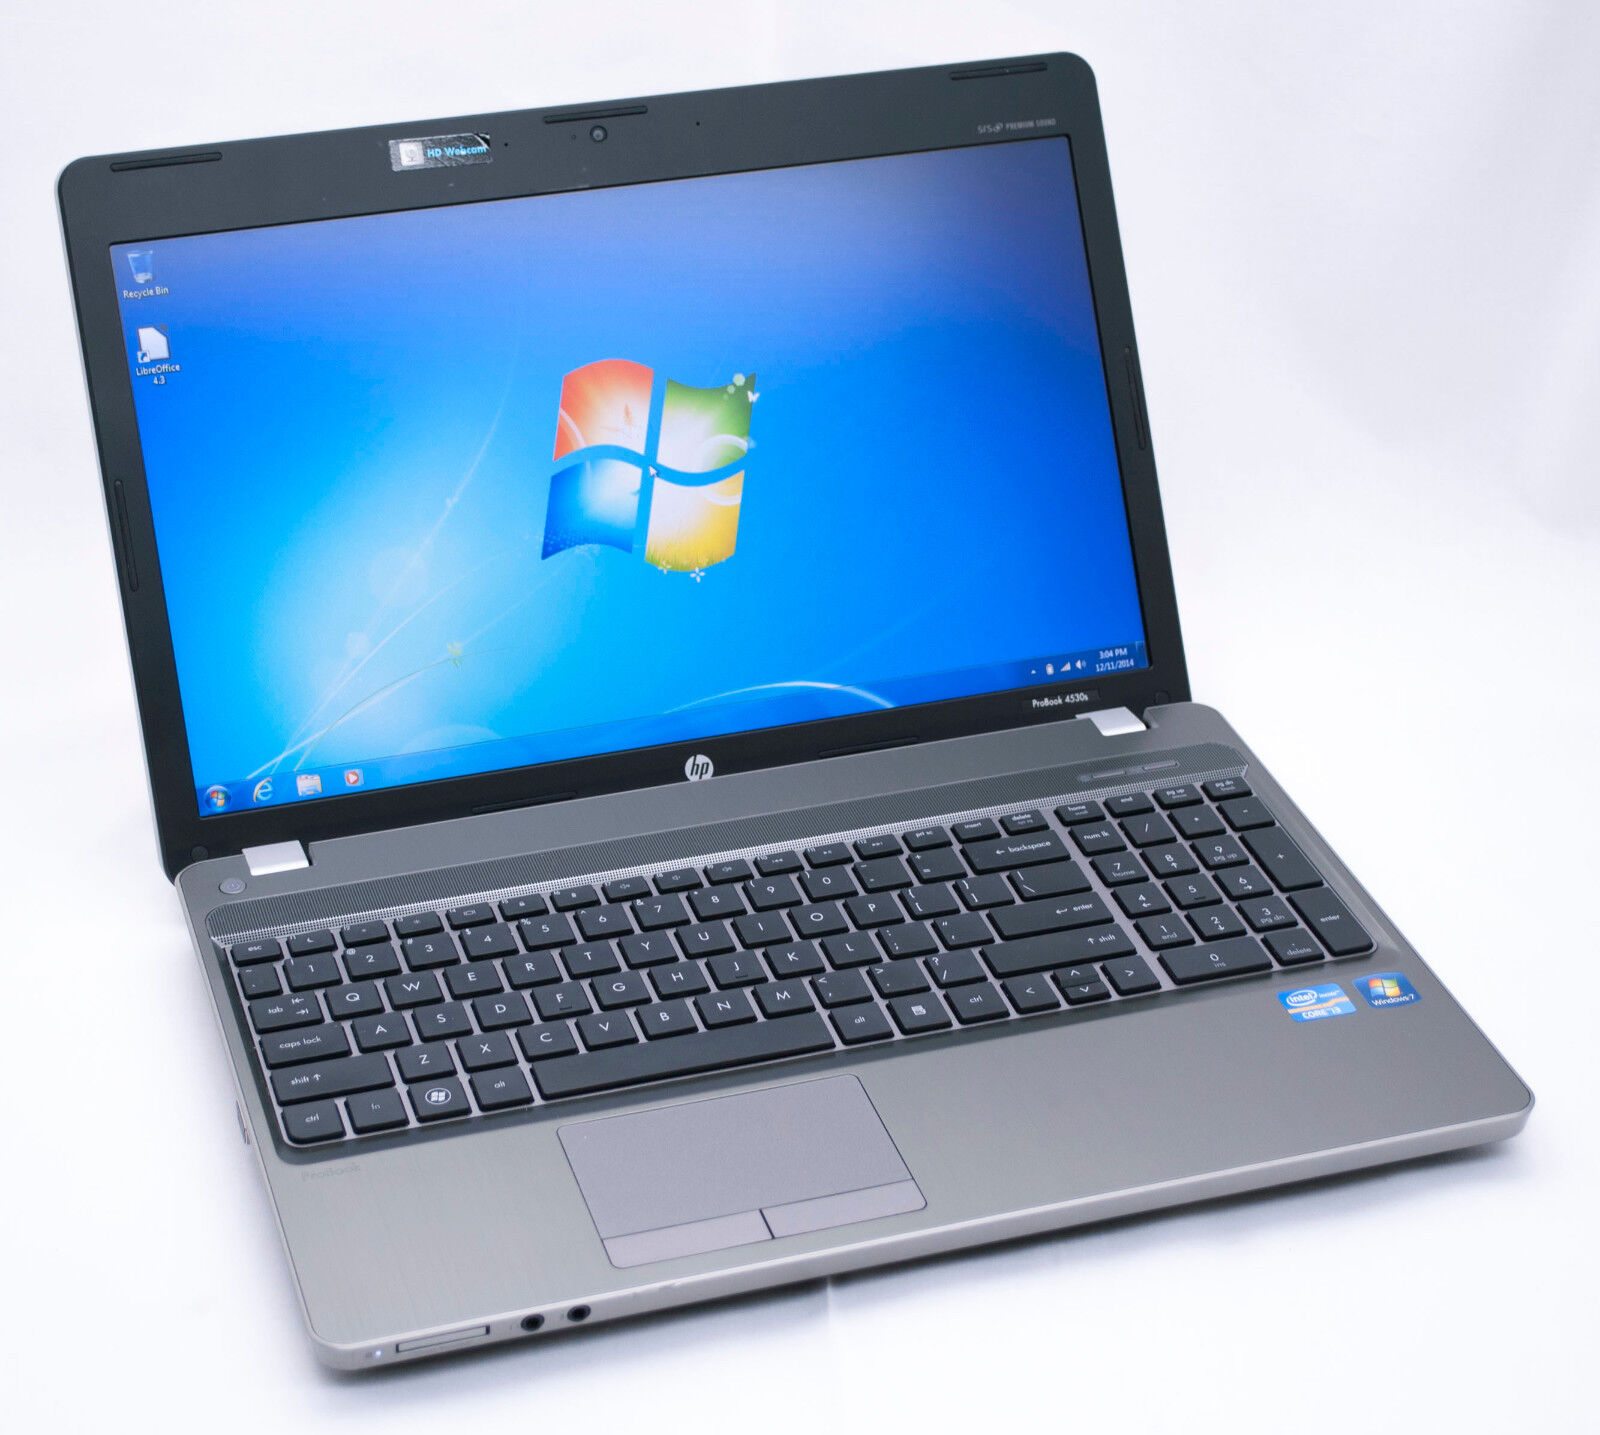 how to turn on wireless capability on laptop windows 7